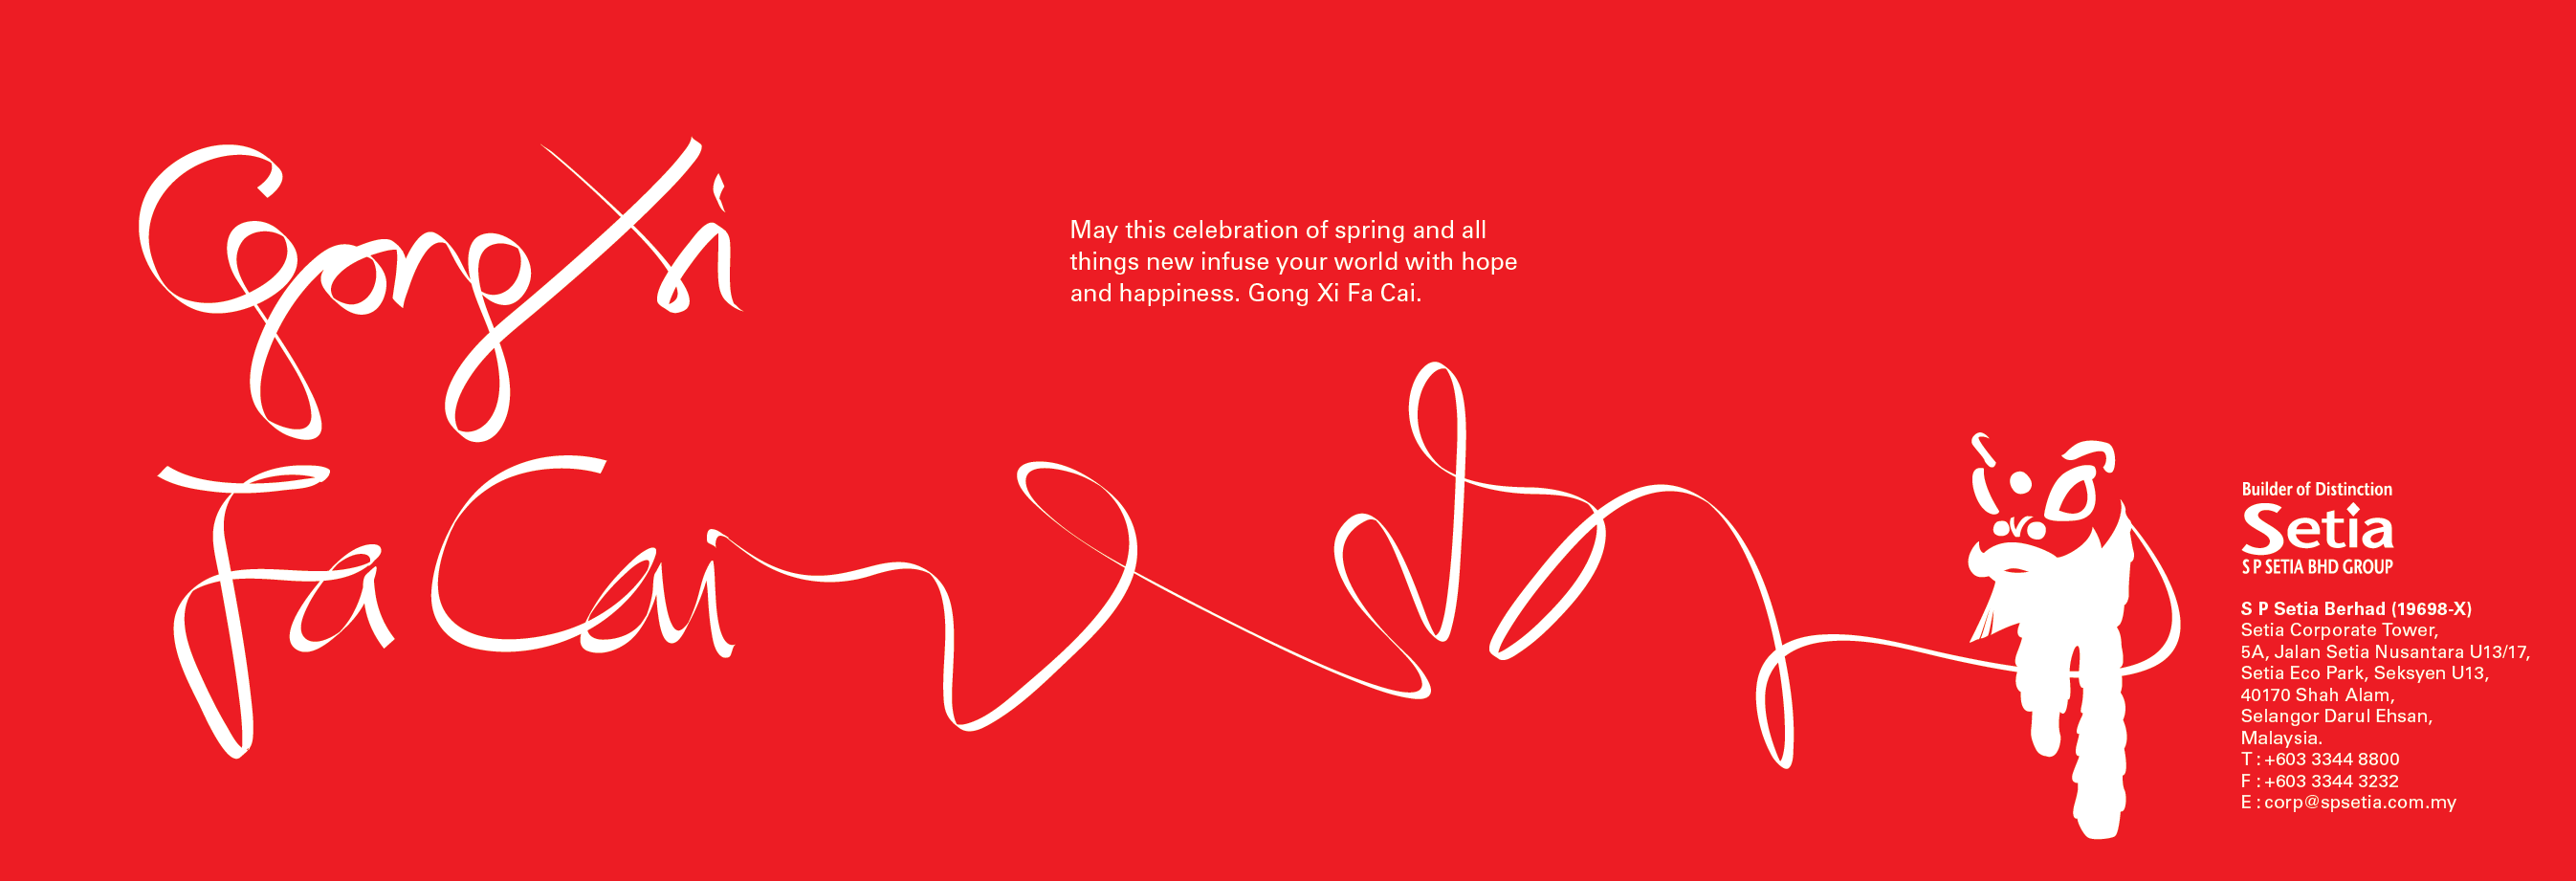 s p setia corporate greetings chinese new year